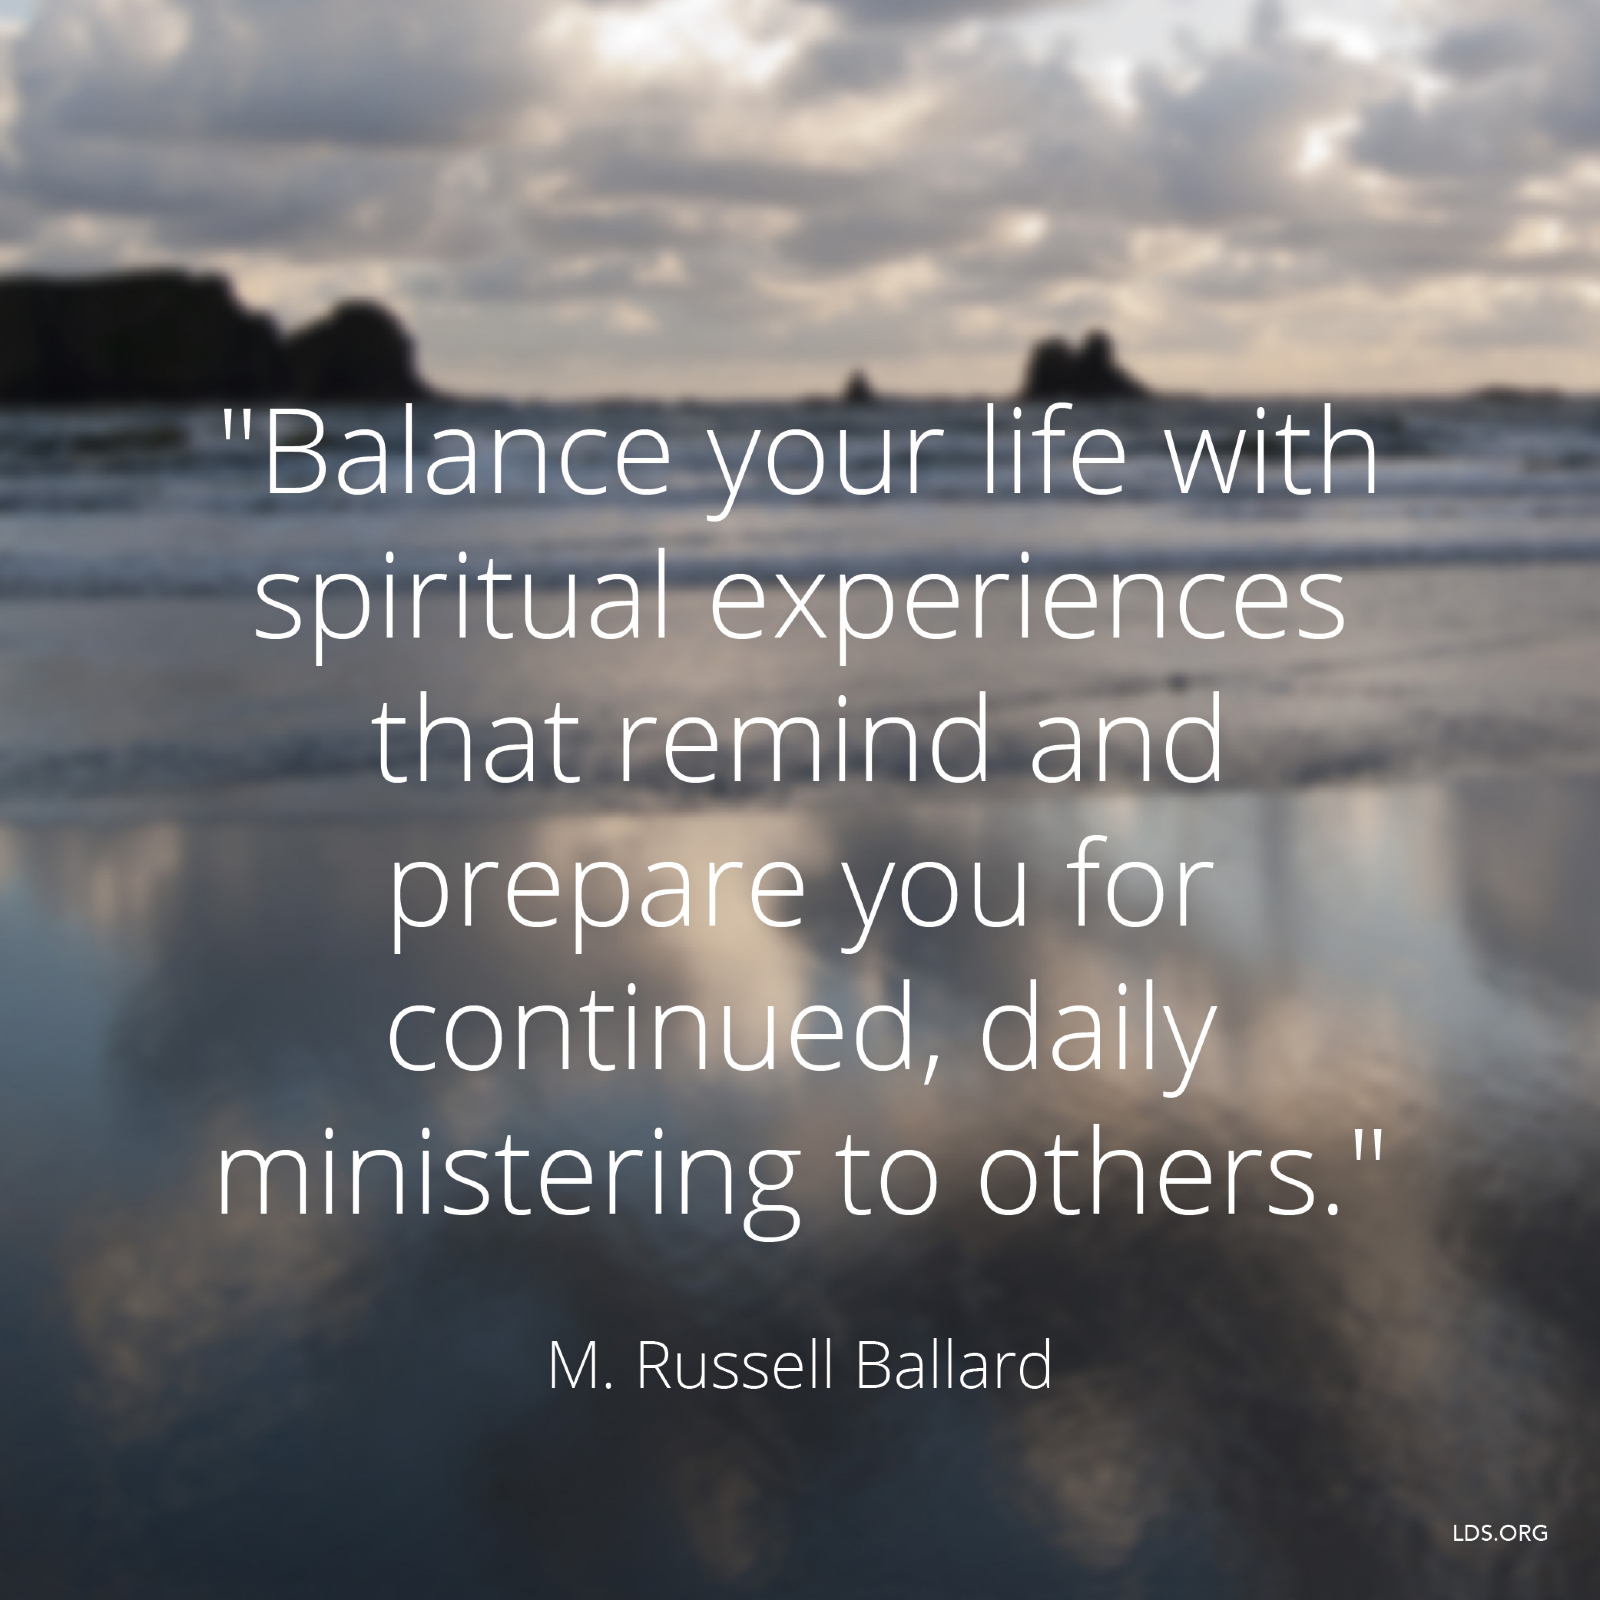 Spiritual Quotes About Life: Balance Your Life